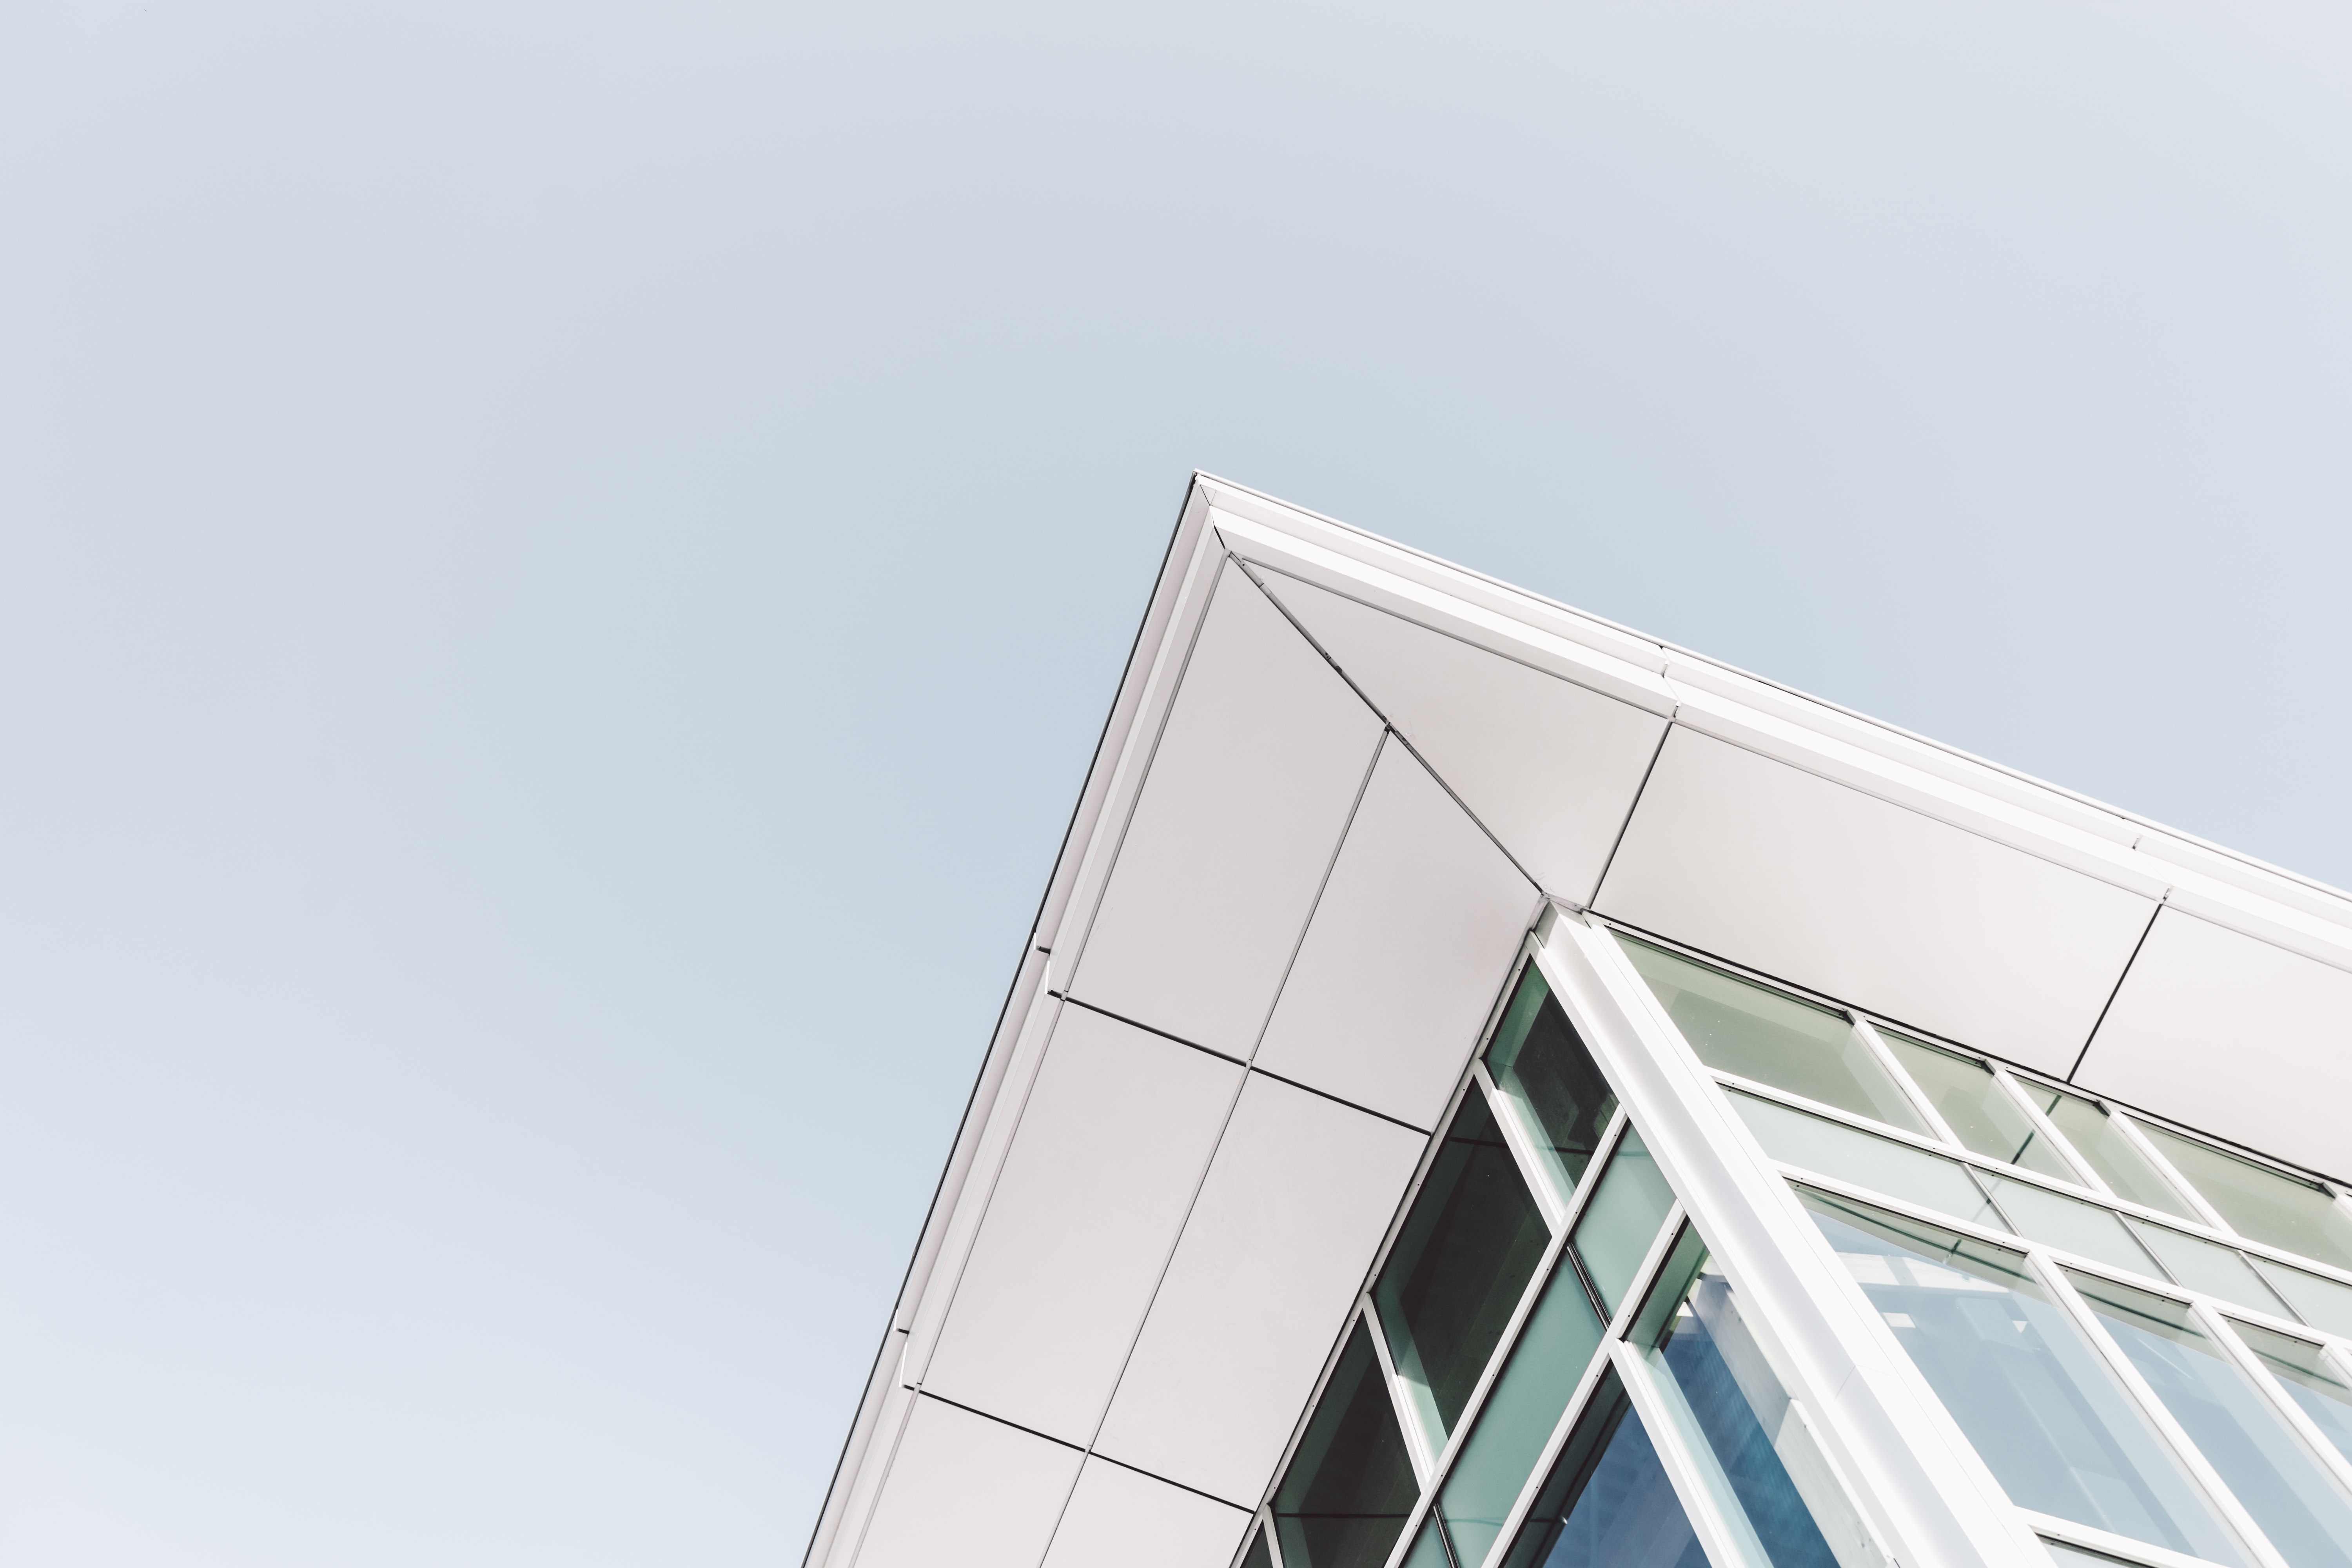 gray and silver building in worms view photography